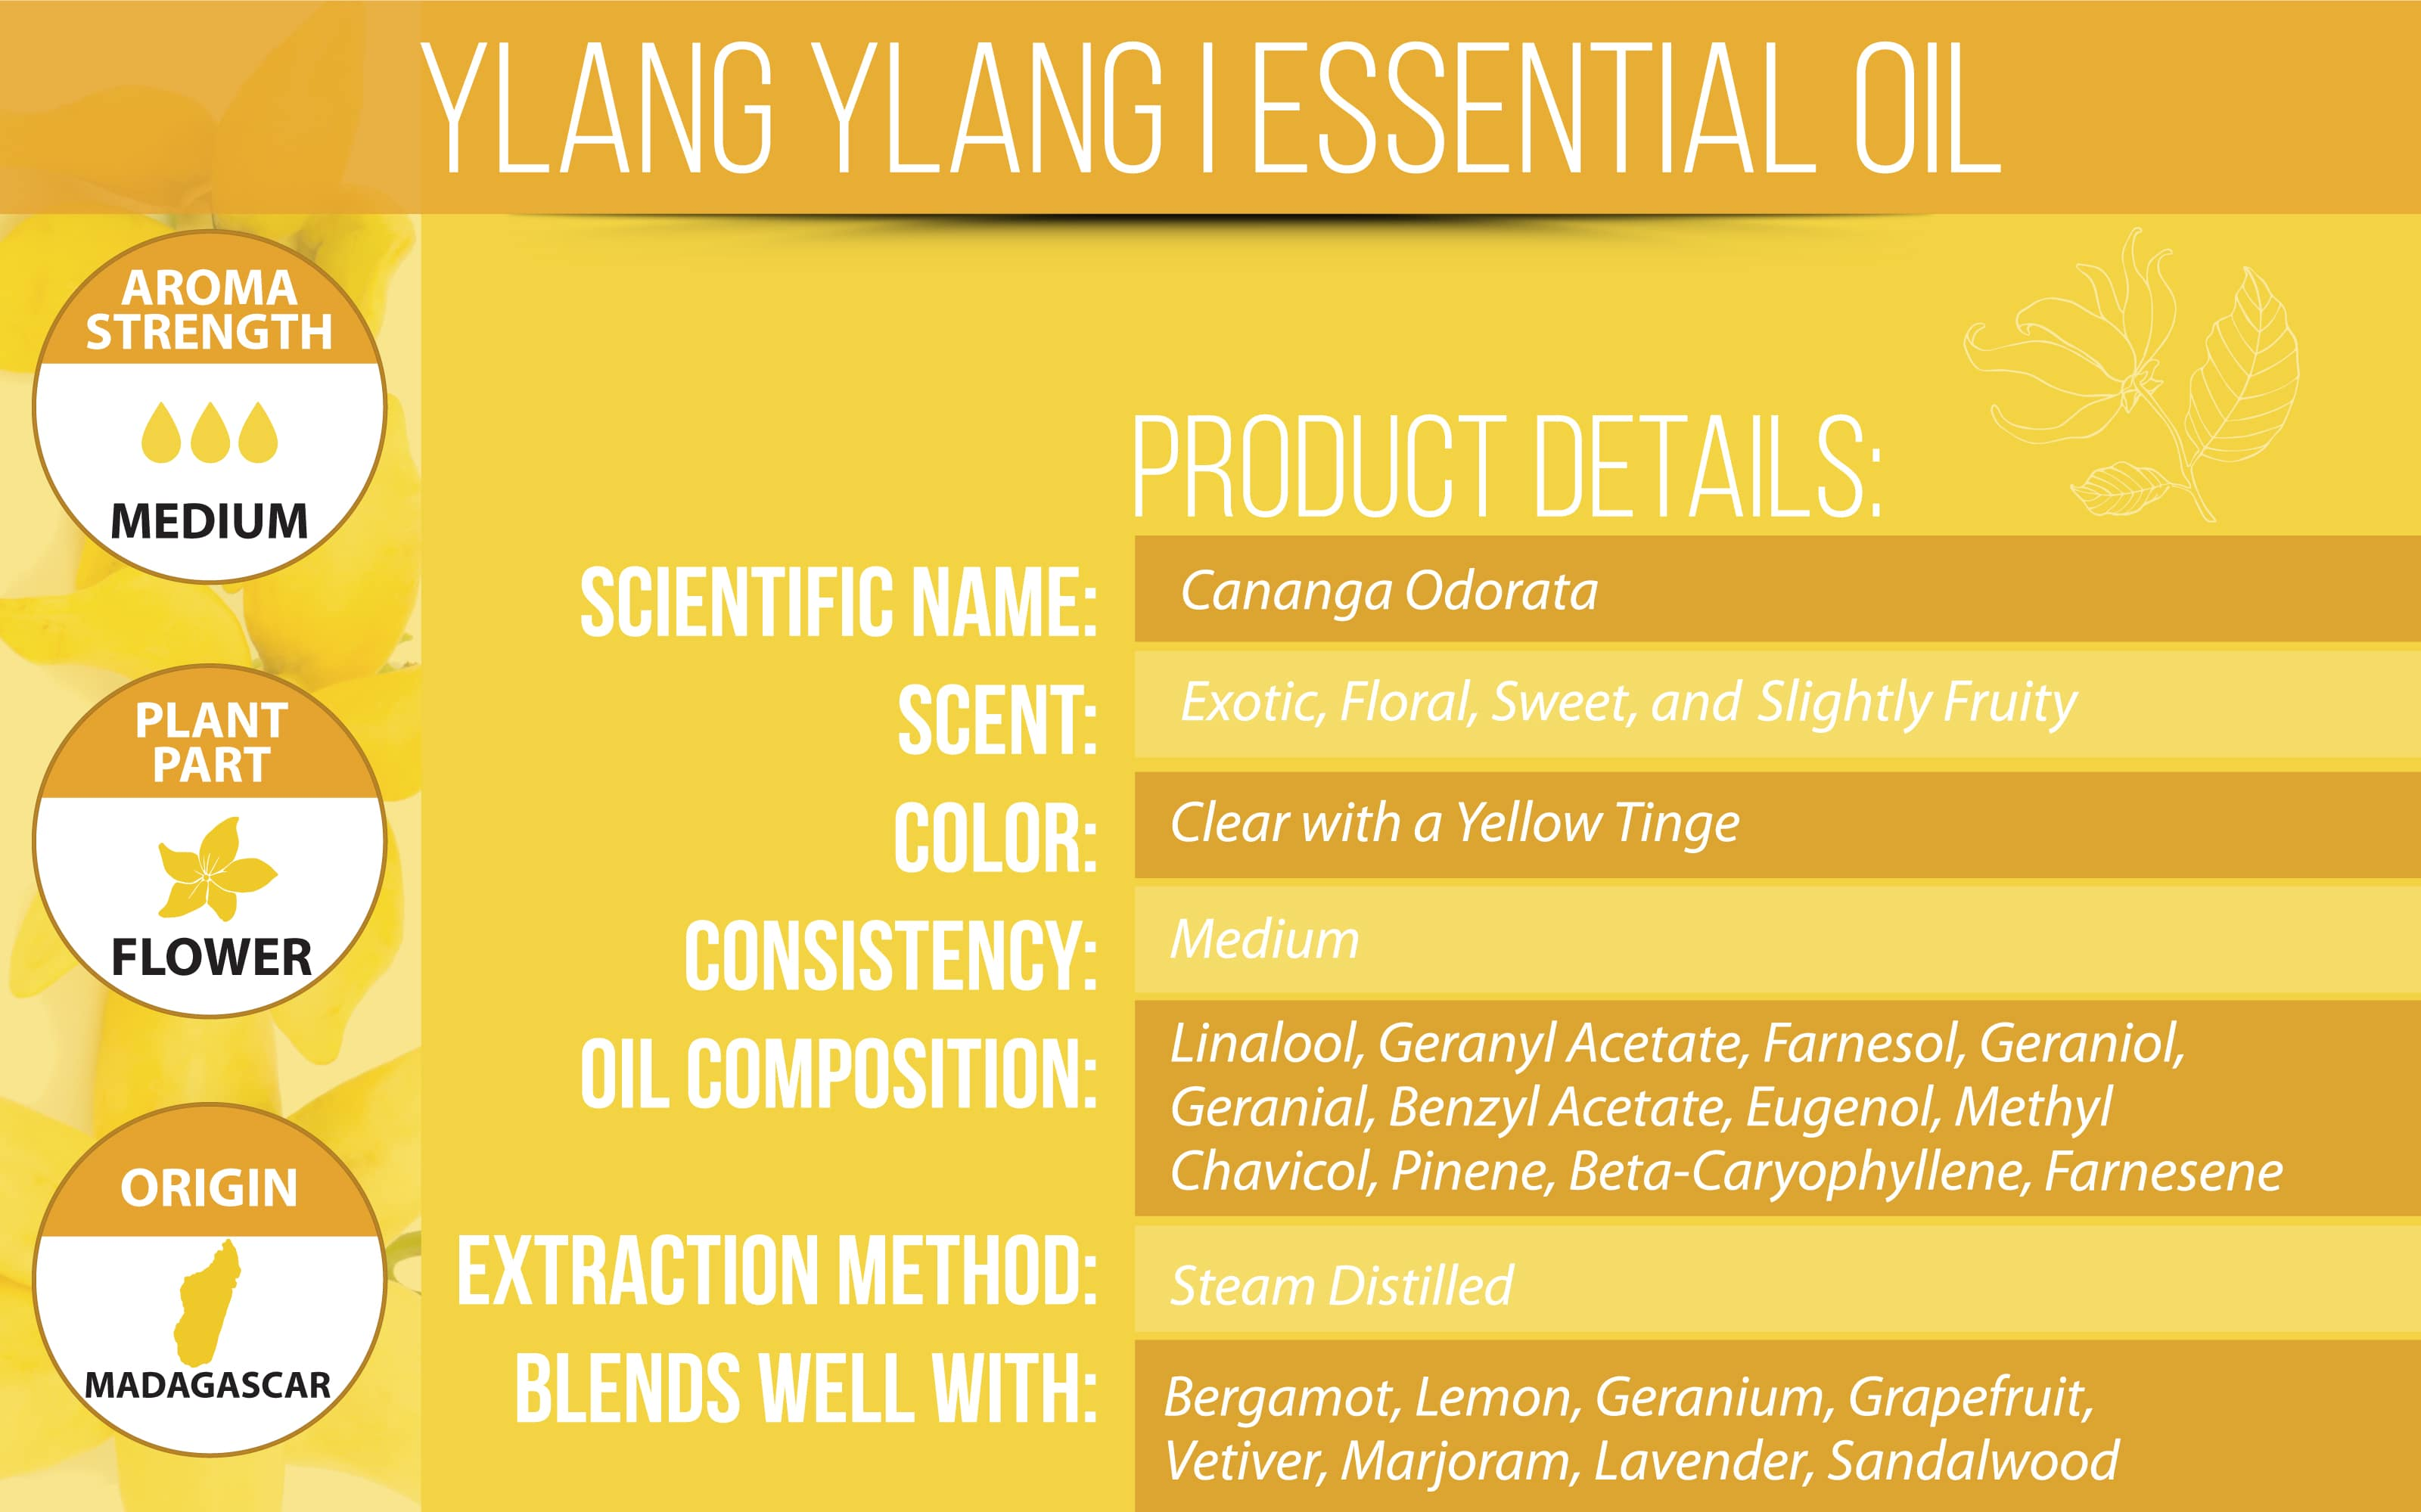 Ylang Ylang Essential Oil Product Details